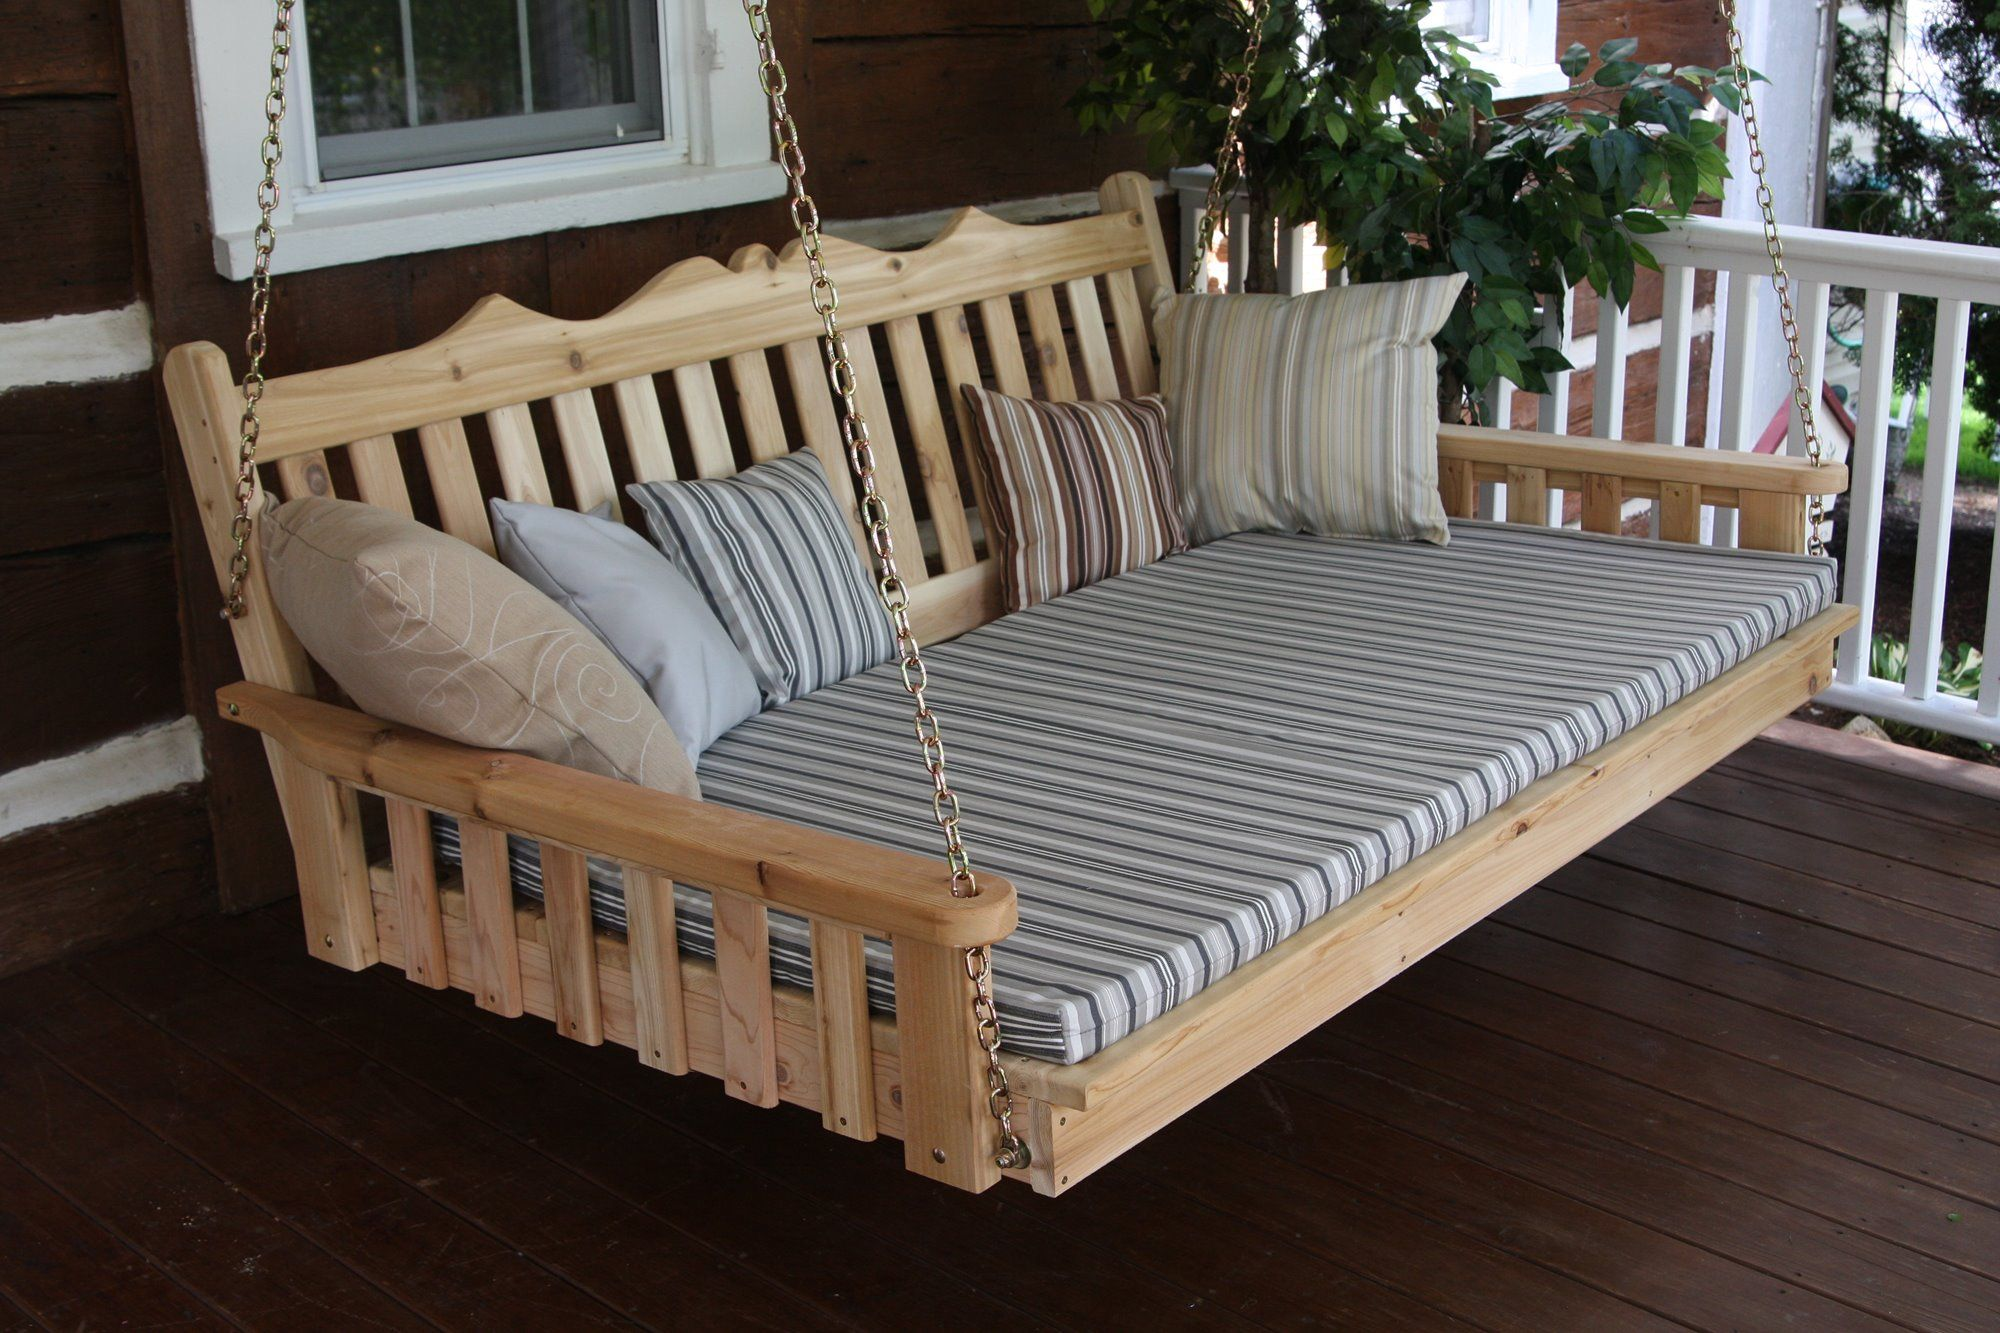 6 Royal English porch swing bed Amish made in the USA